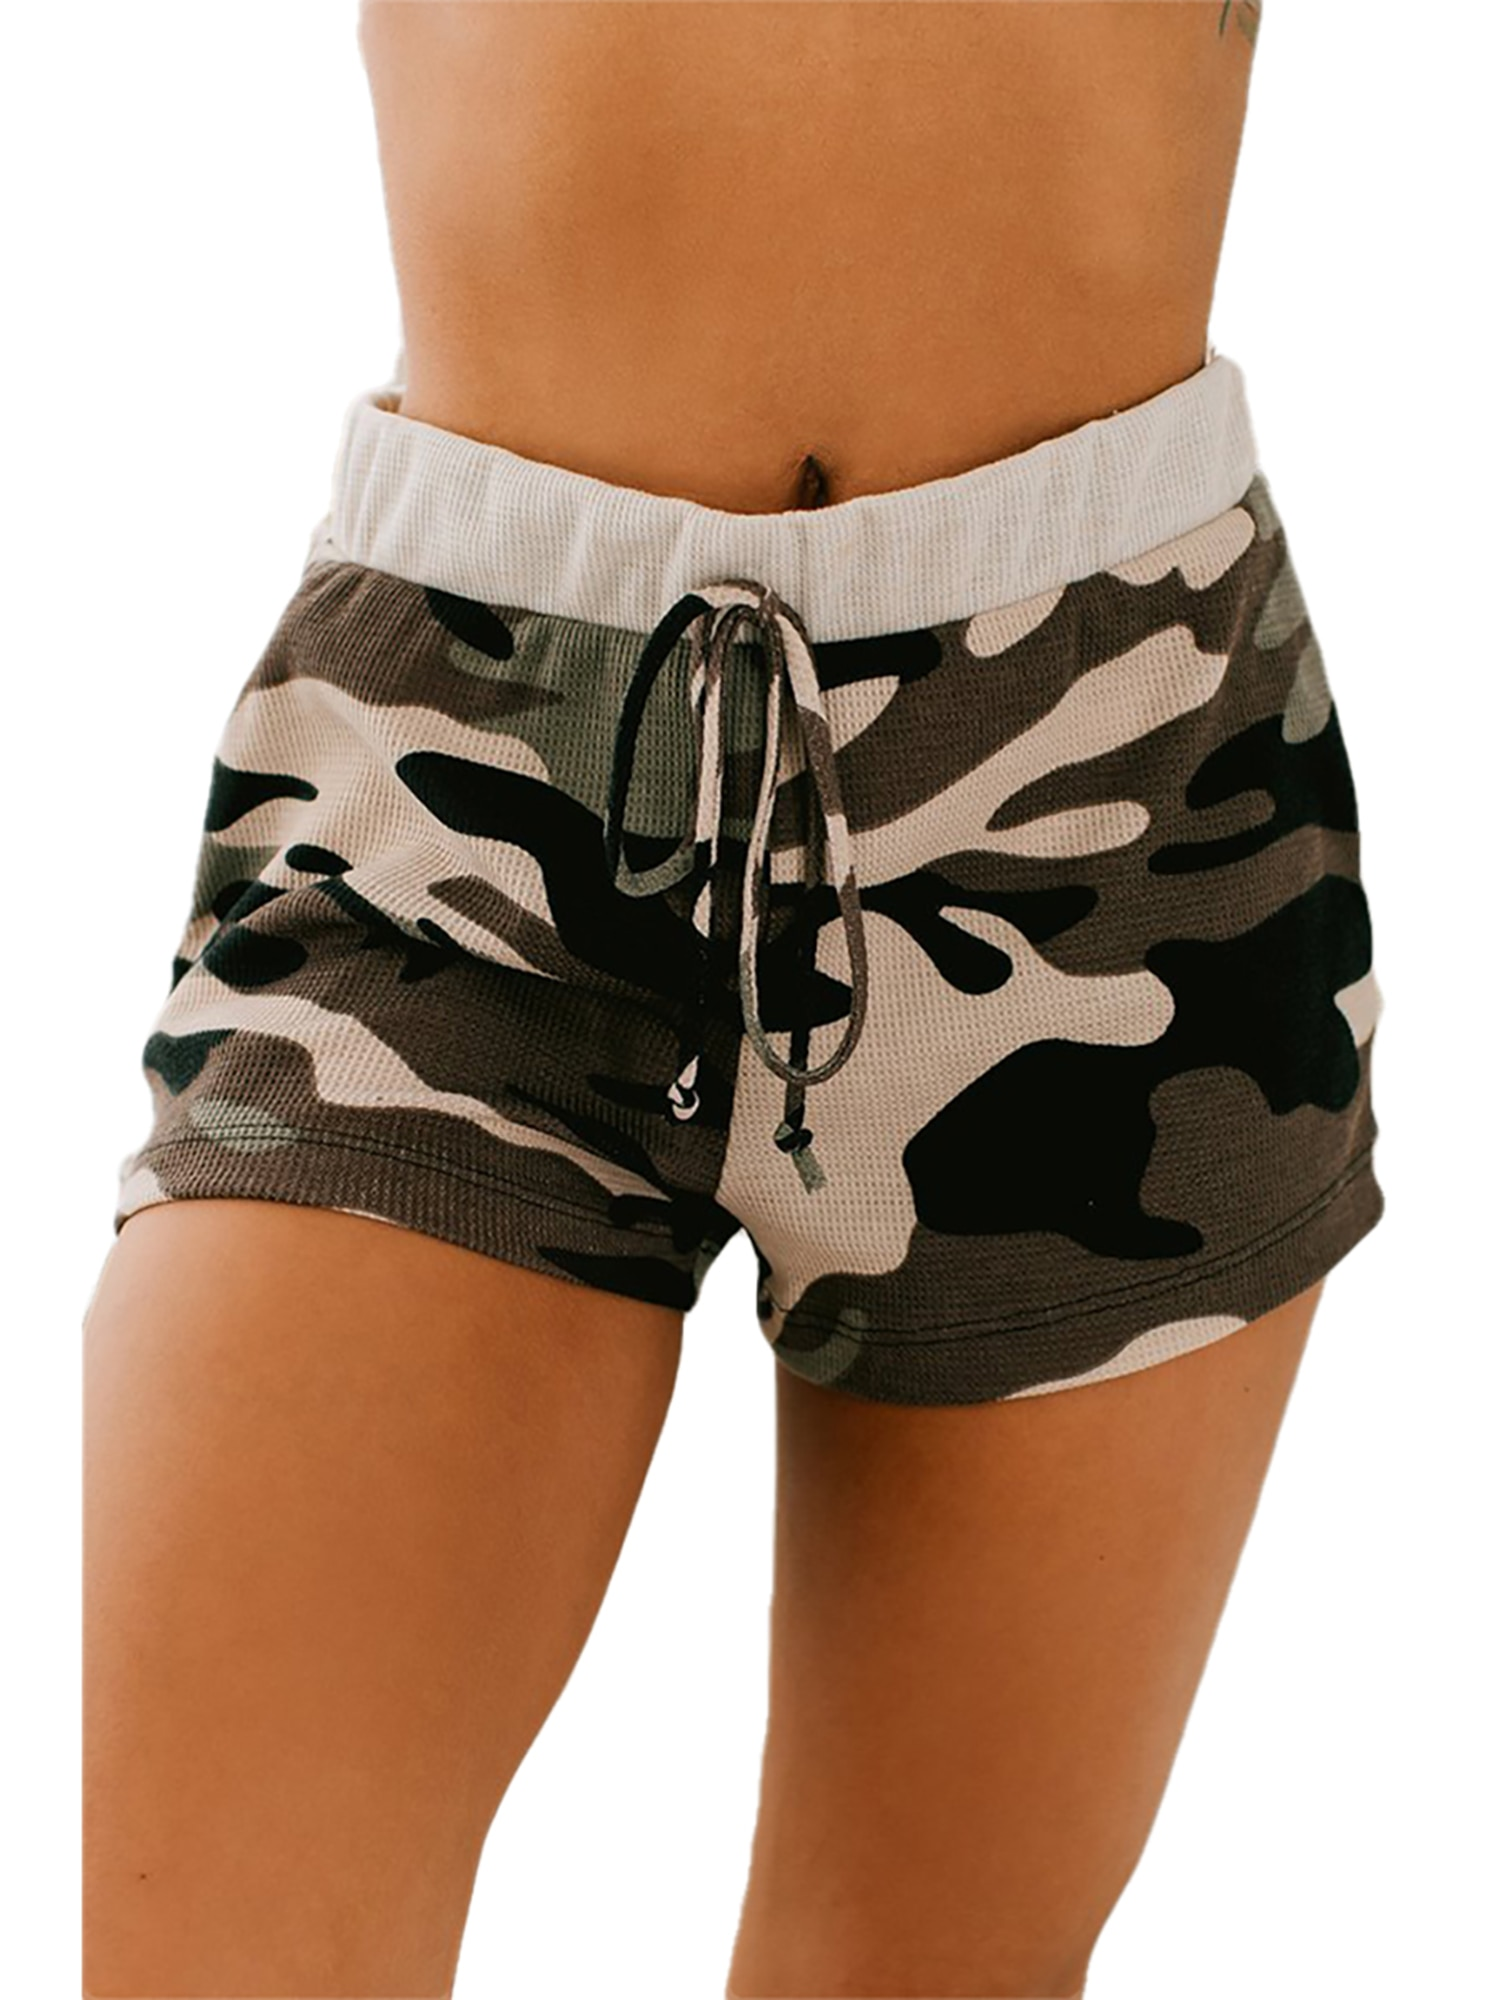 Women's Casual Style Shorts Camouflage Printed Cotton Blend Lounge Shorts with Drawstring Ladies Elastic Mid Waist Short Pants men s camouflage style lace up slimming elastic shorts